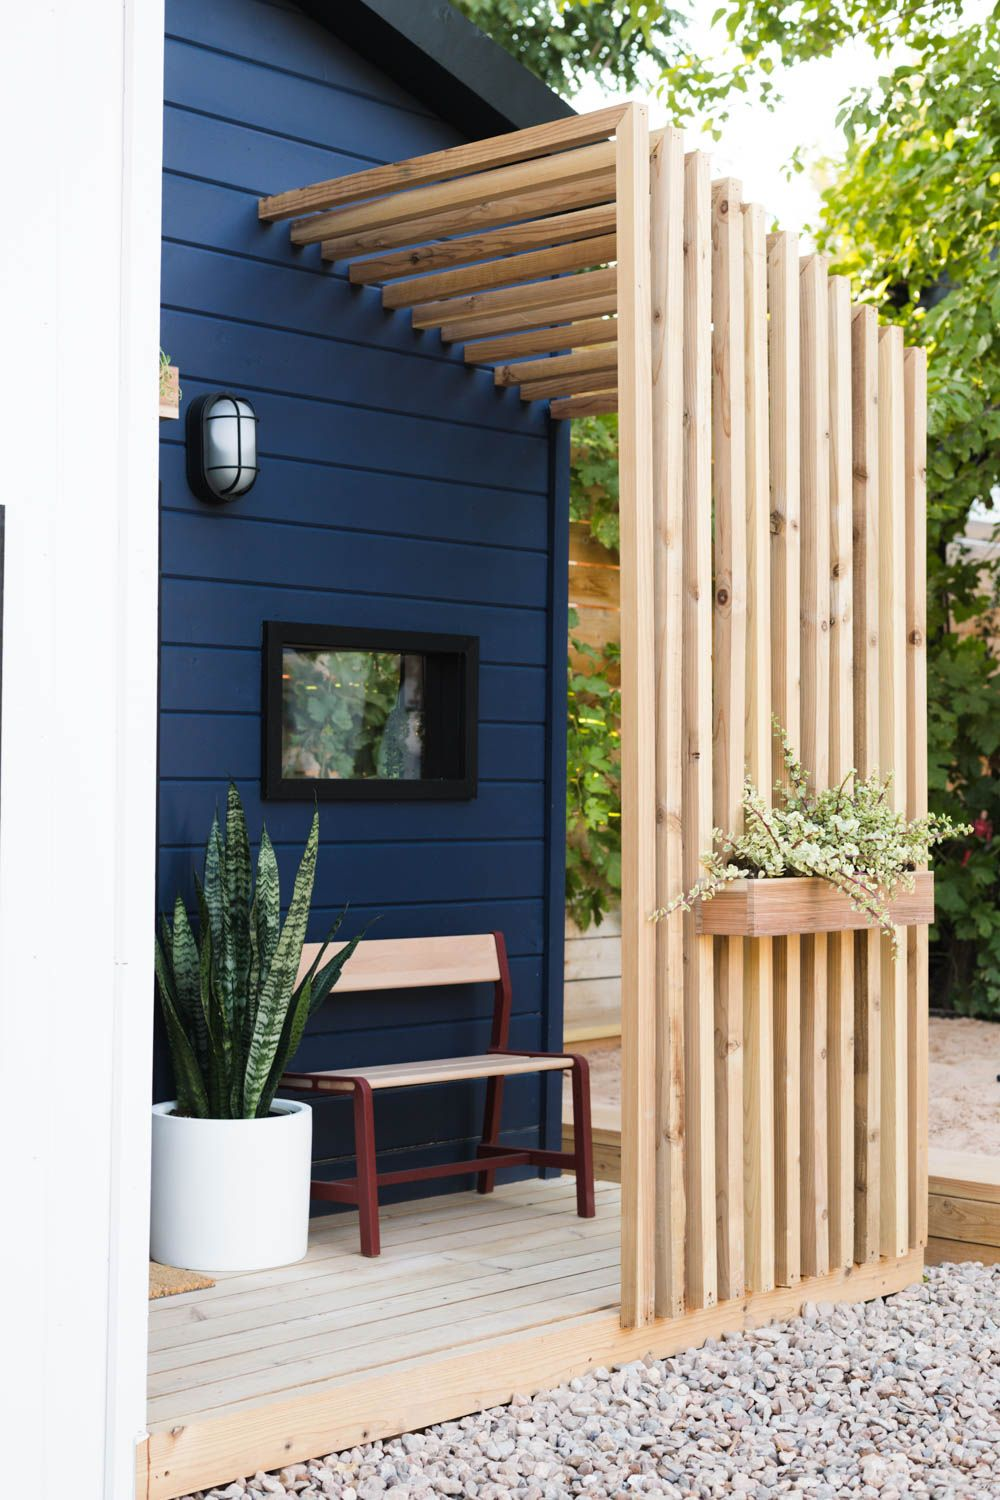 Amenagement Terrasse Bois Jardin Luxe the Little Merc Modern Playhouse Reveal and Sherwin S 2020 Of 58 Élégant Amenagement Terrasse Bois Jardin